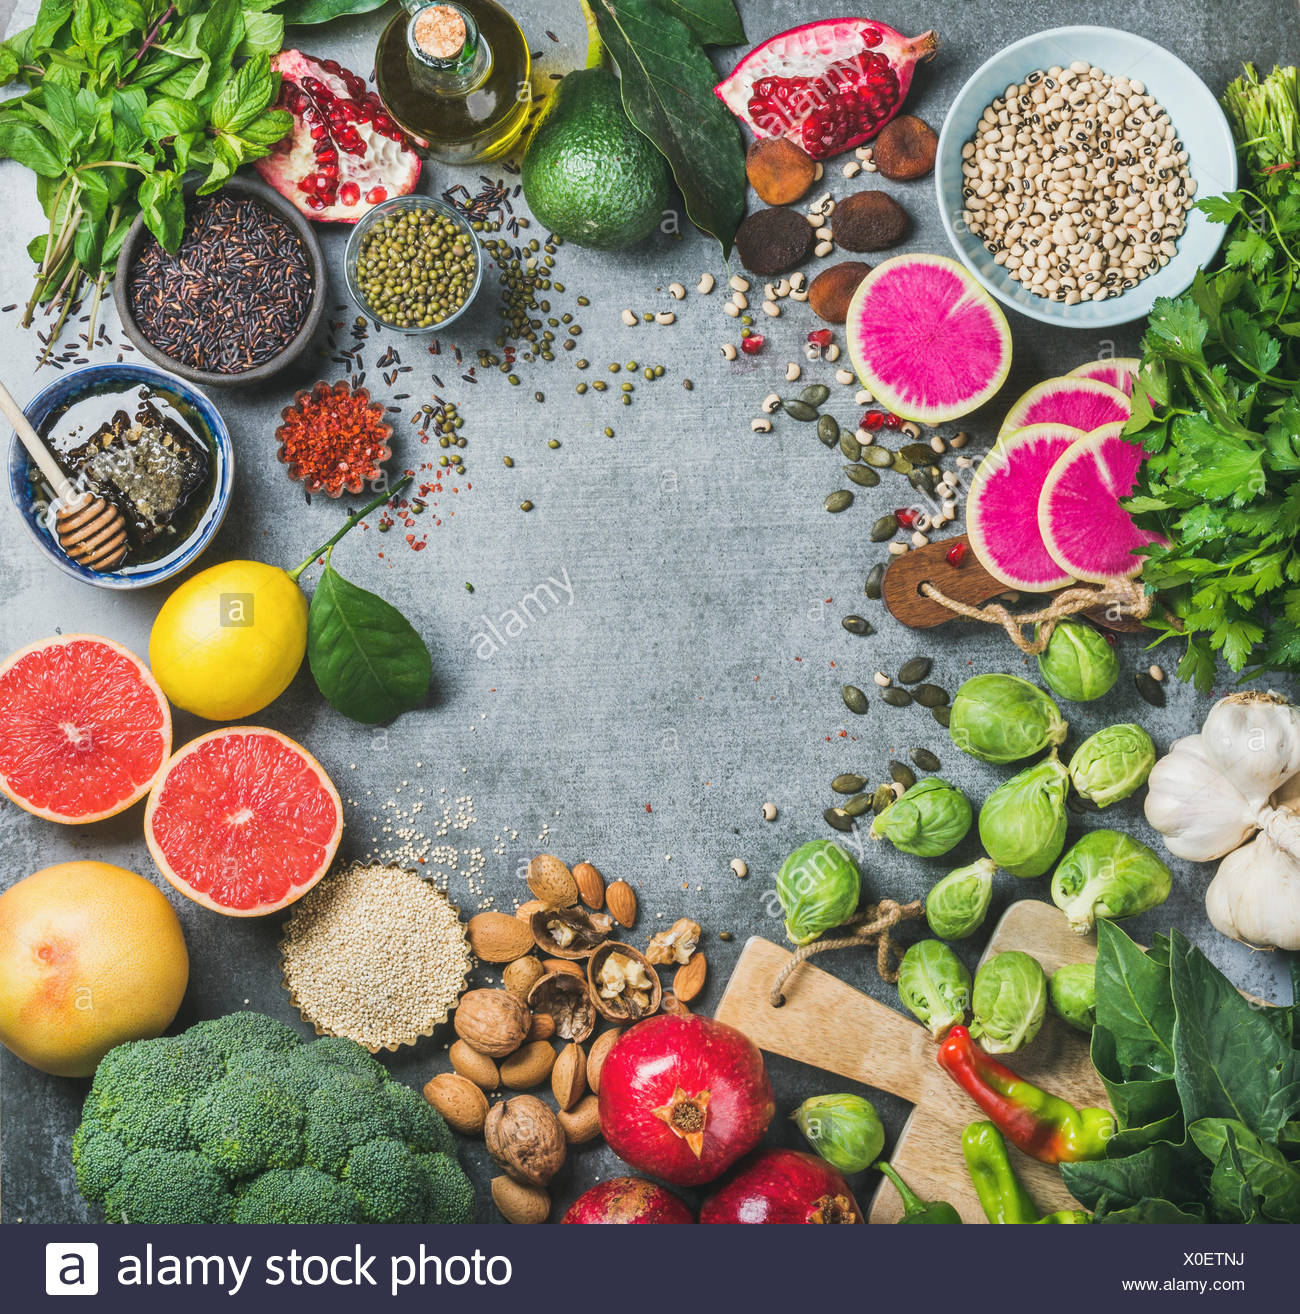 Clean eating concept. Variety of vegetables, fruit, seeds, cereals, beans, spices, superfoods, herbs, condiment for healthy eating, dieting, vegan, ve - Stock Image